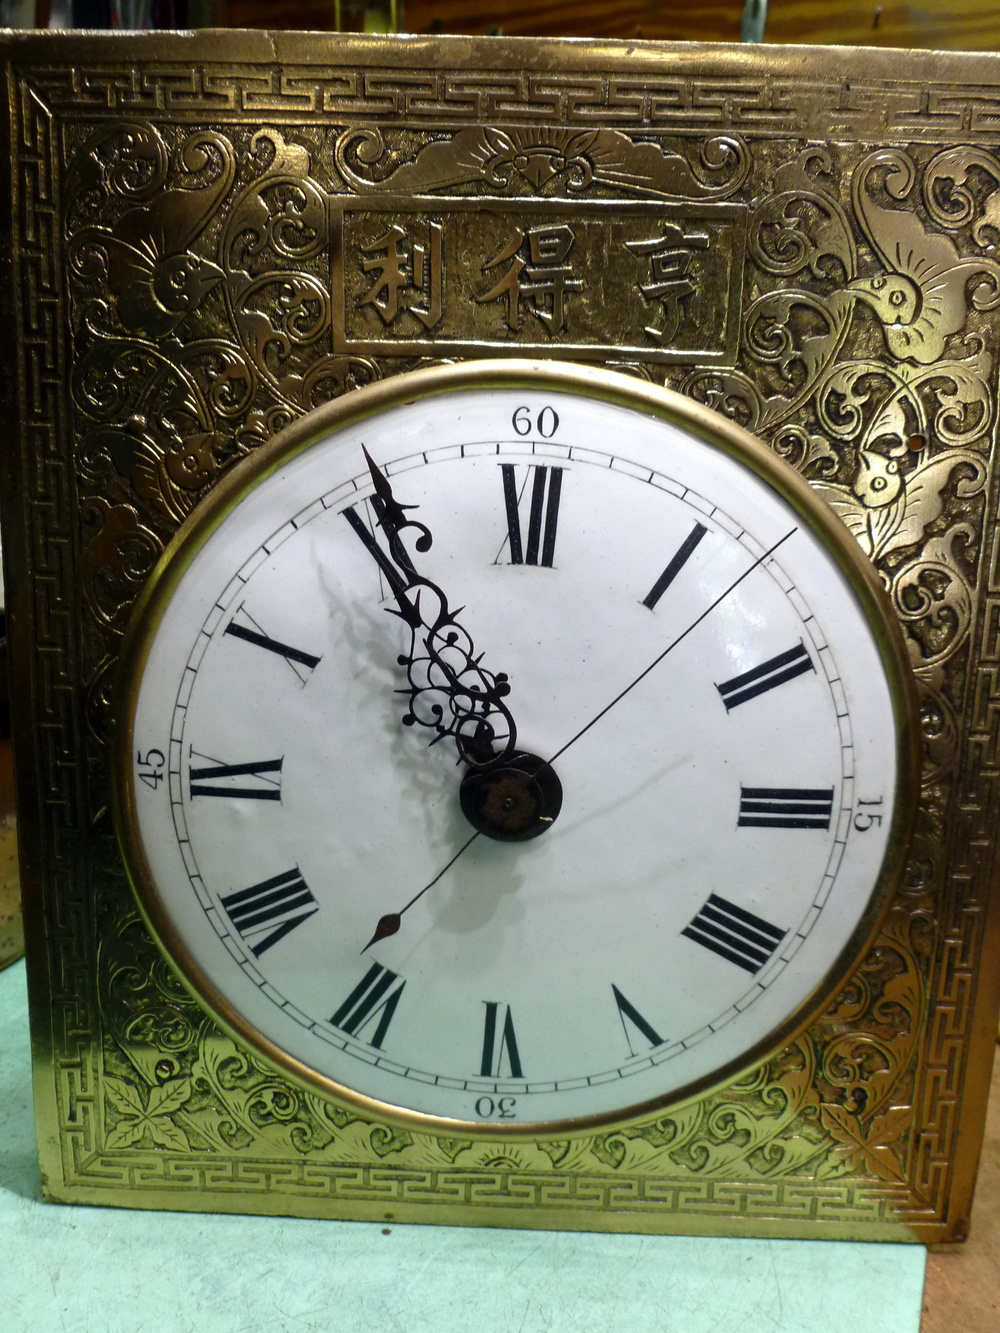 You can see how highly carved the dial is.